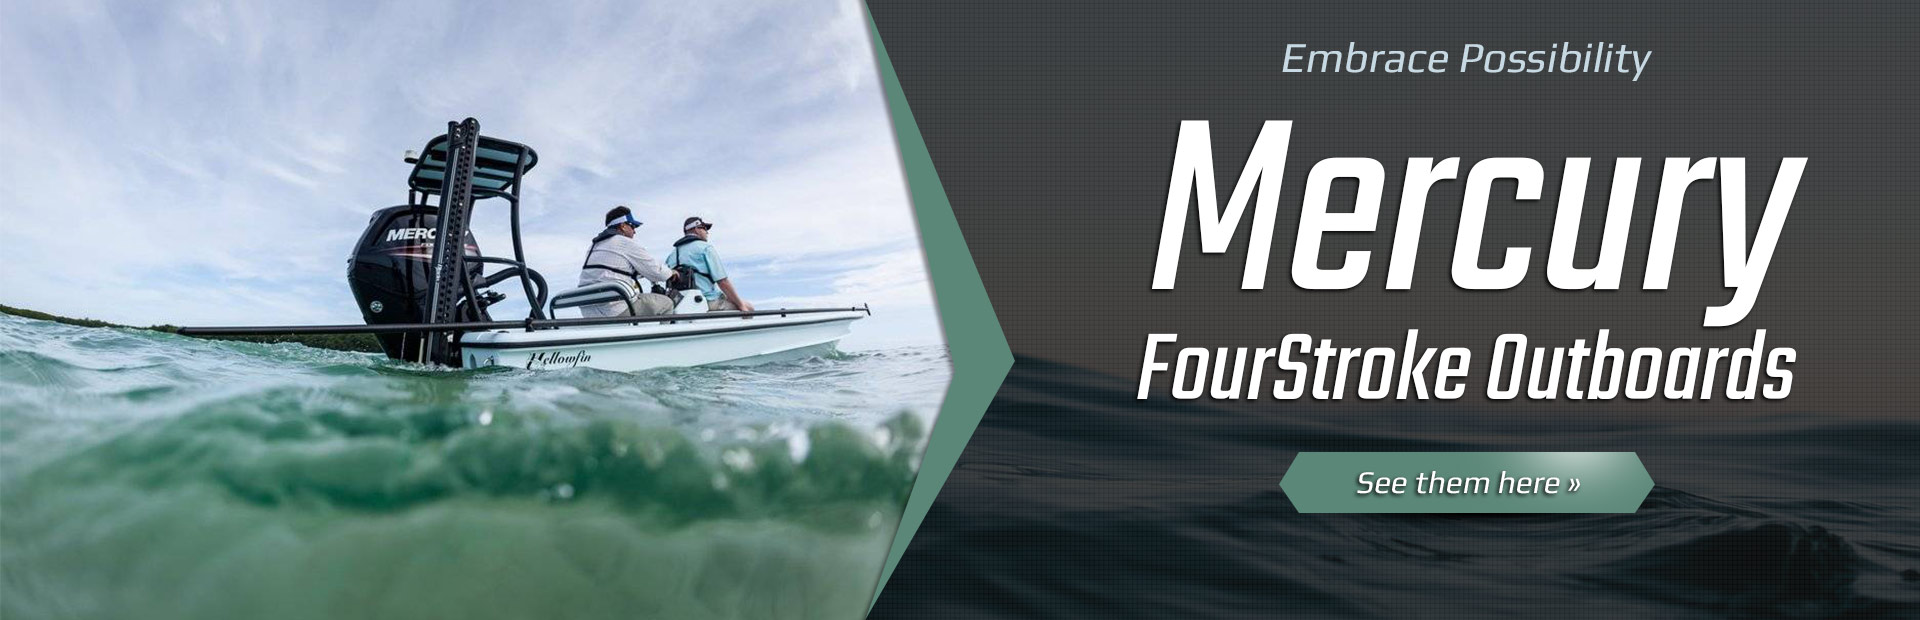 Embrace possibility with Mercury FourStroke outboards. Click here to view the models.